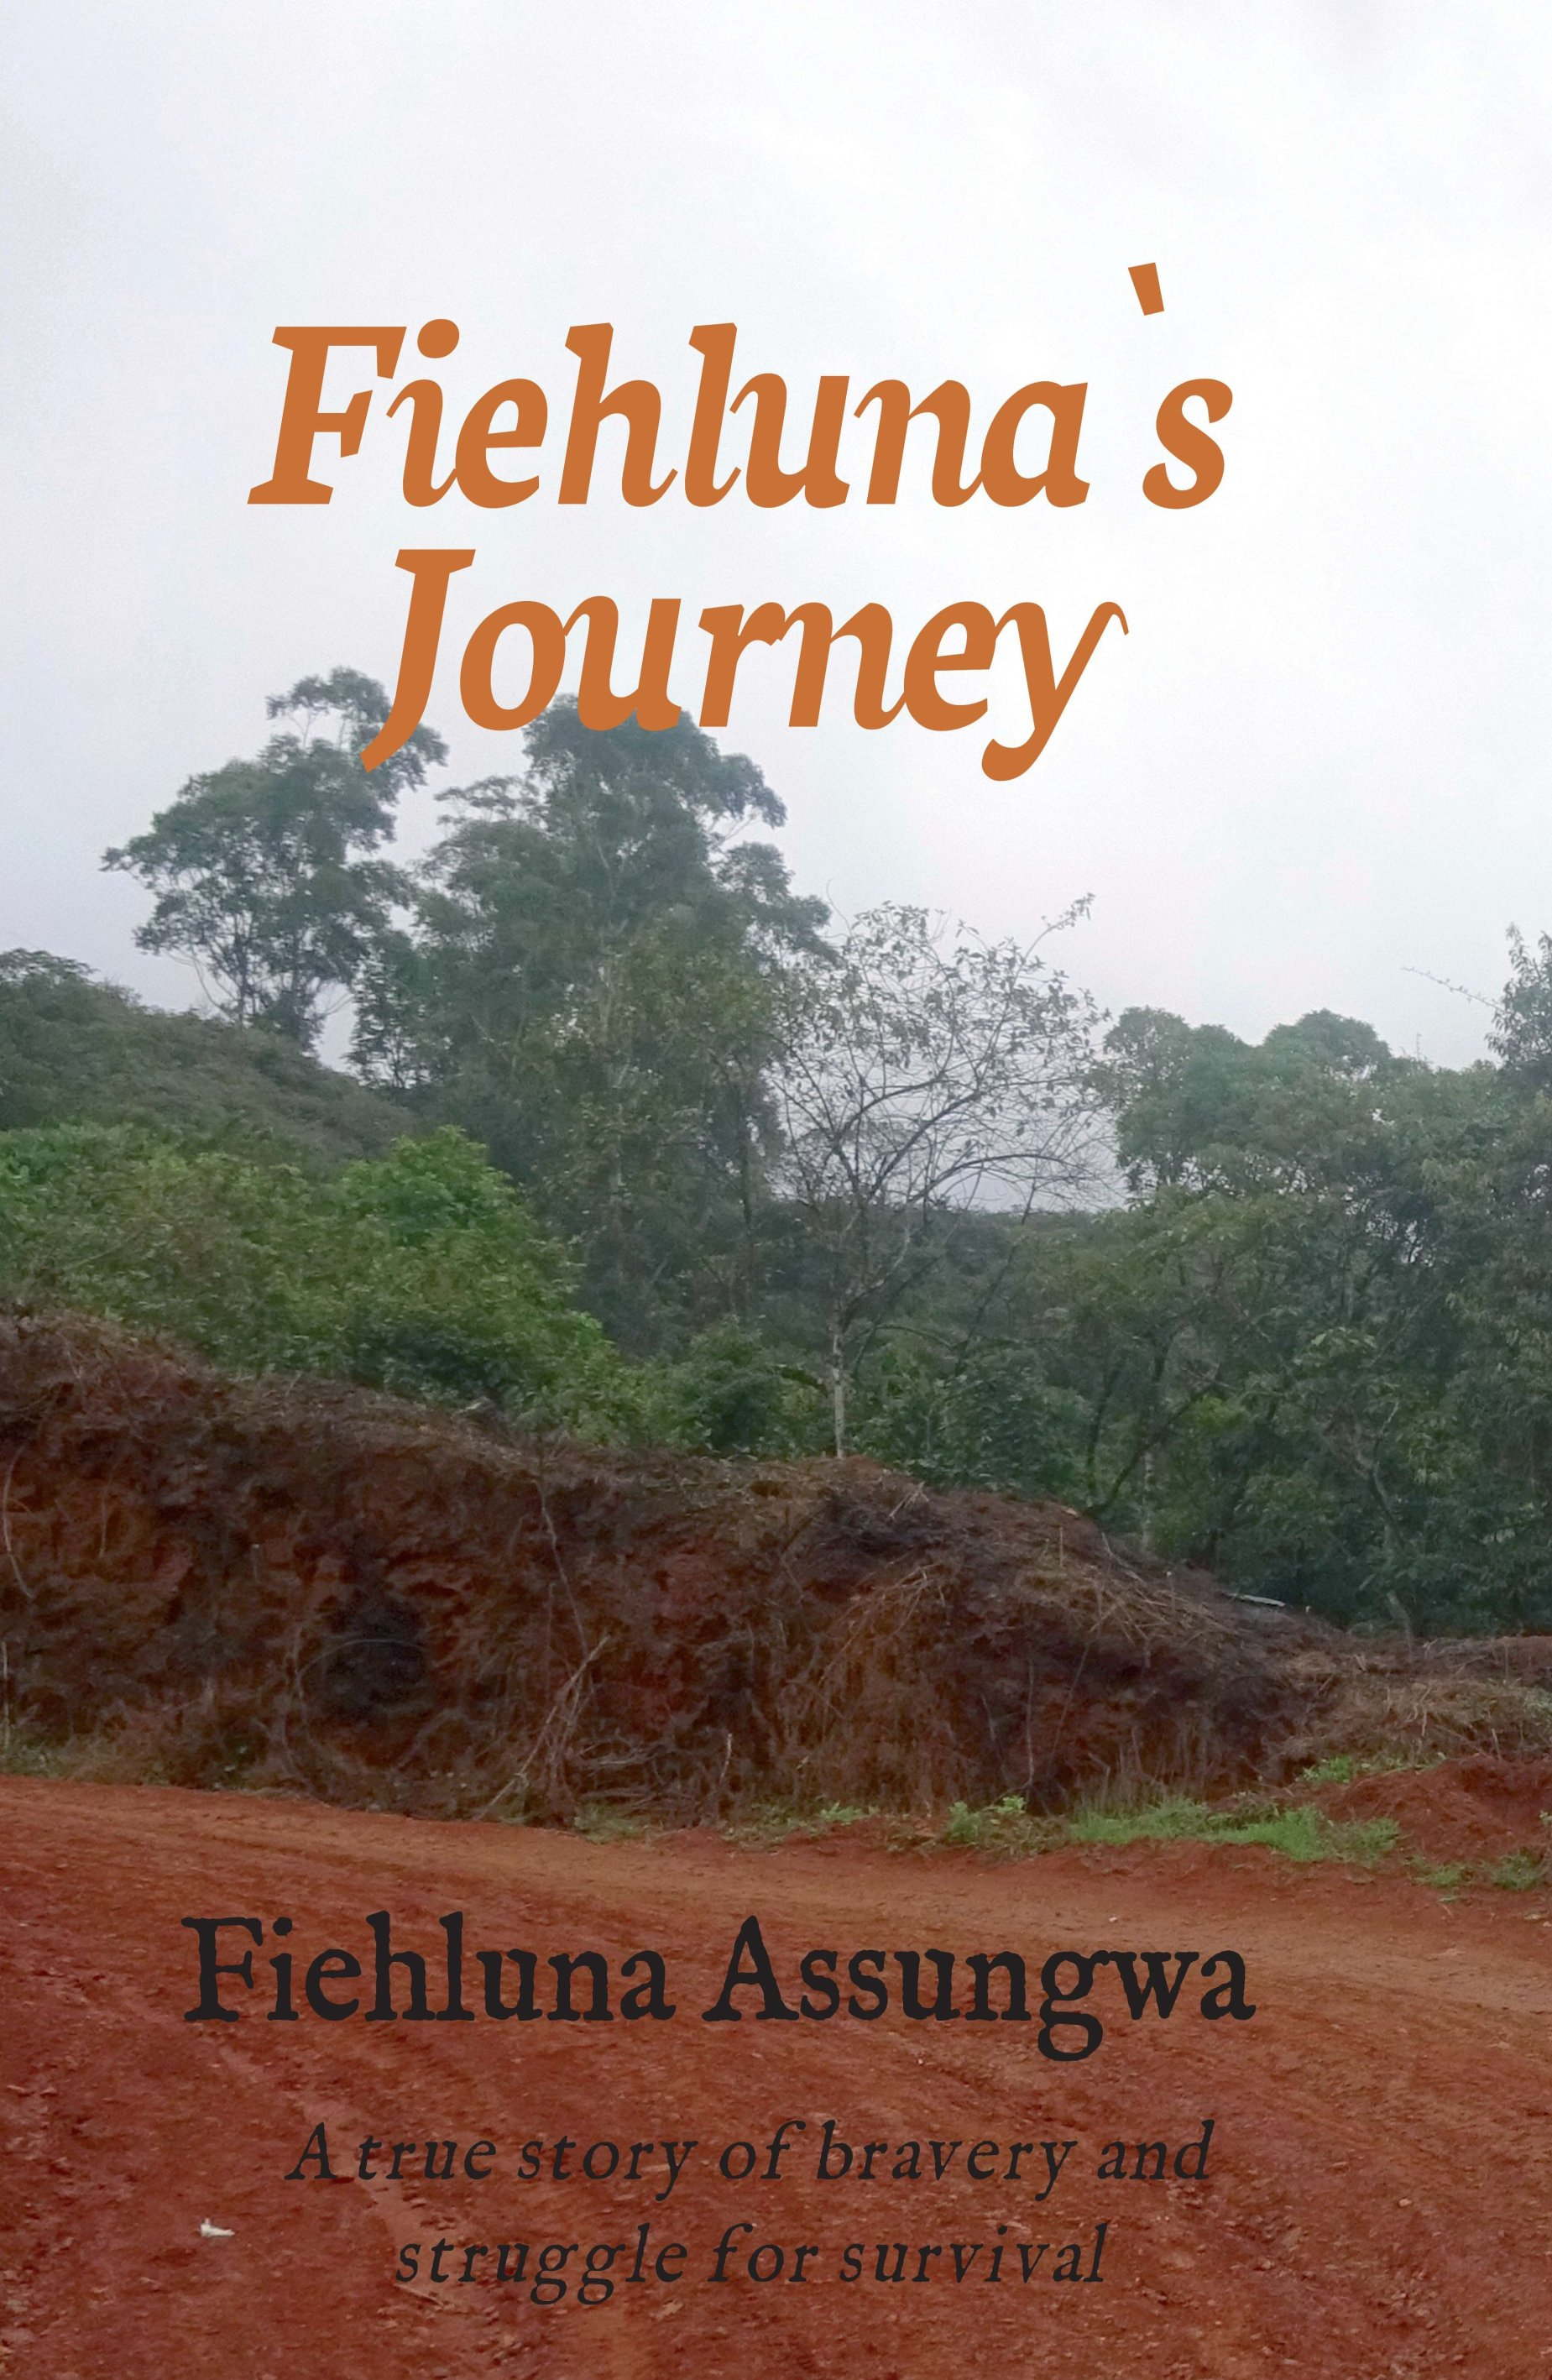 Fiehluna's Journey - A true story of bravery and struggle for survival